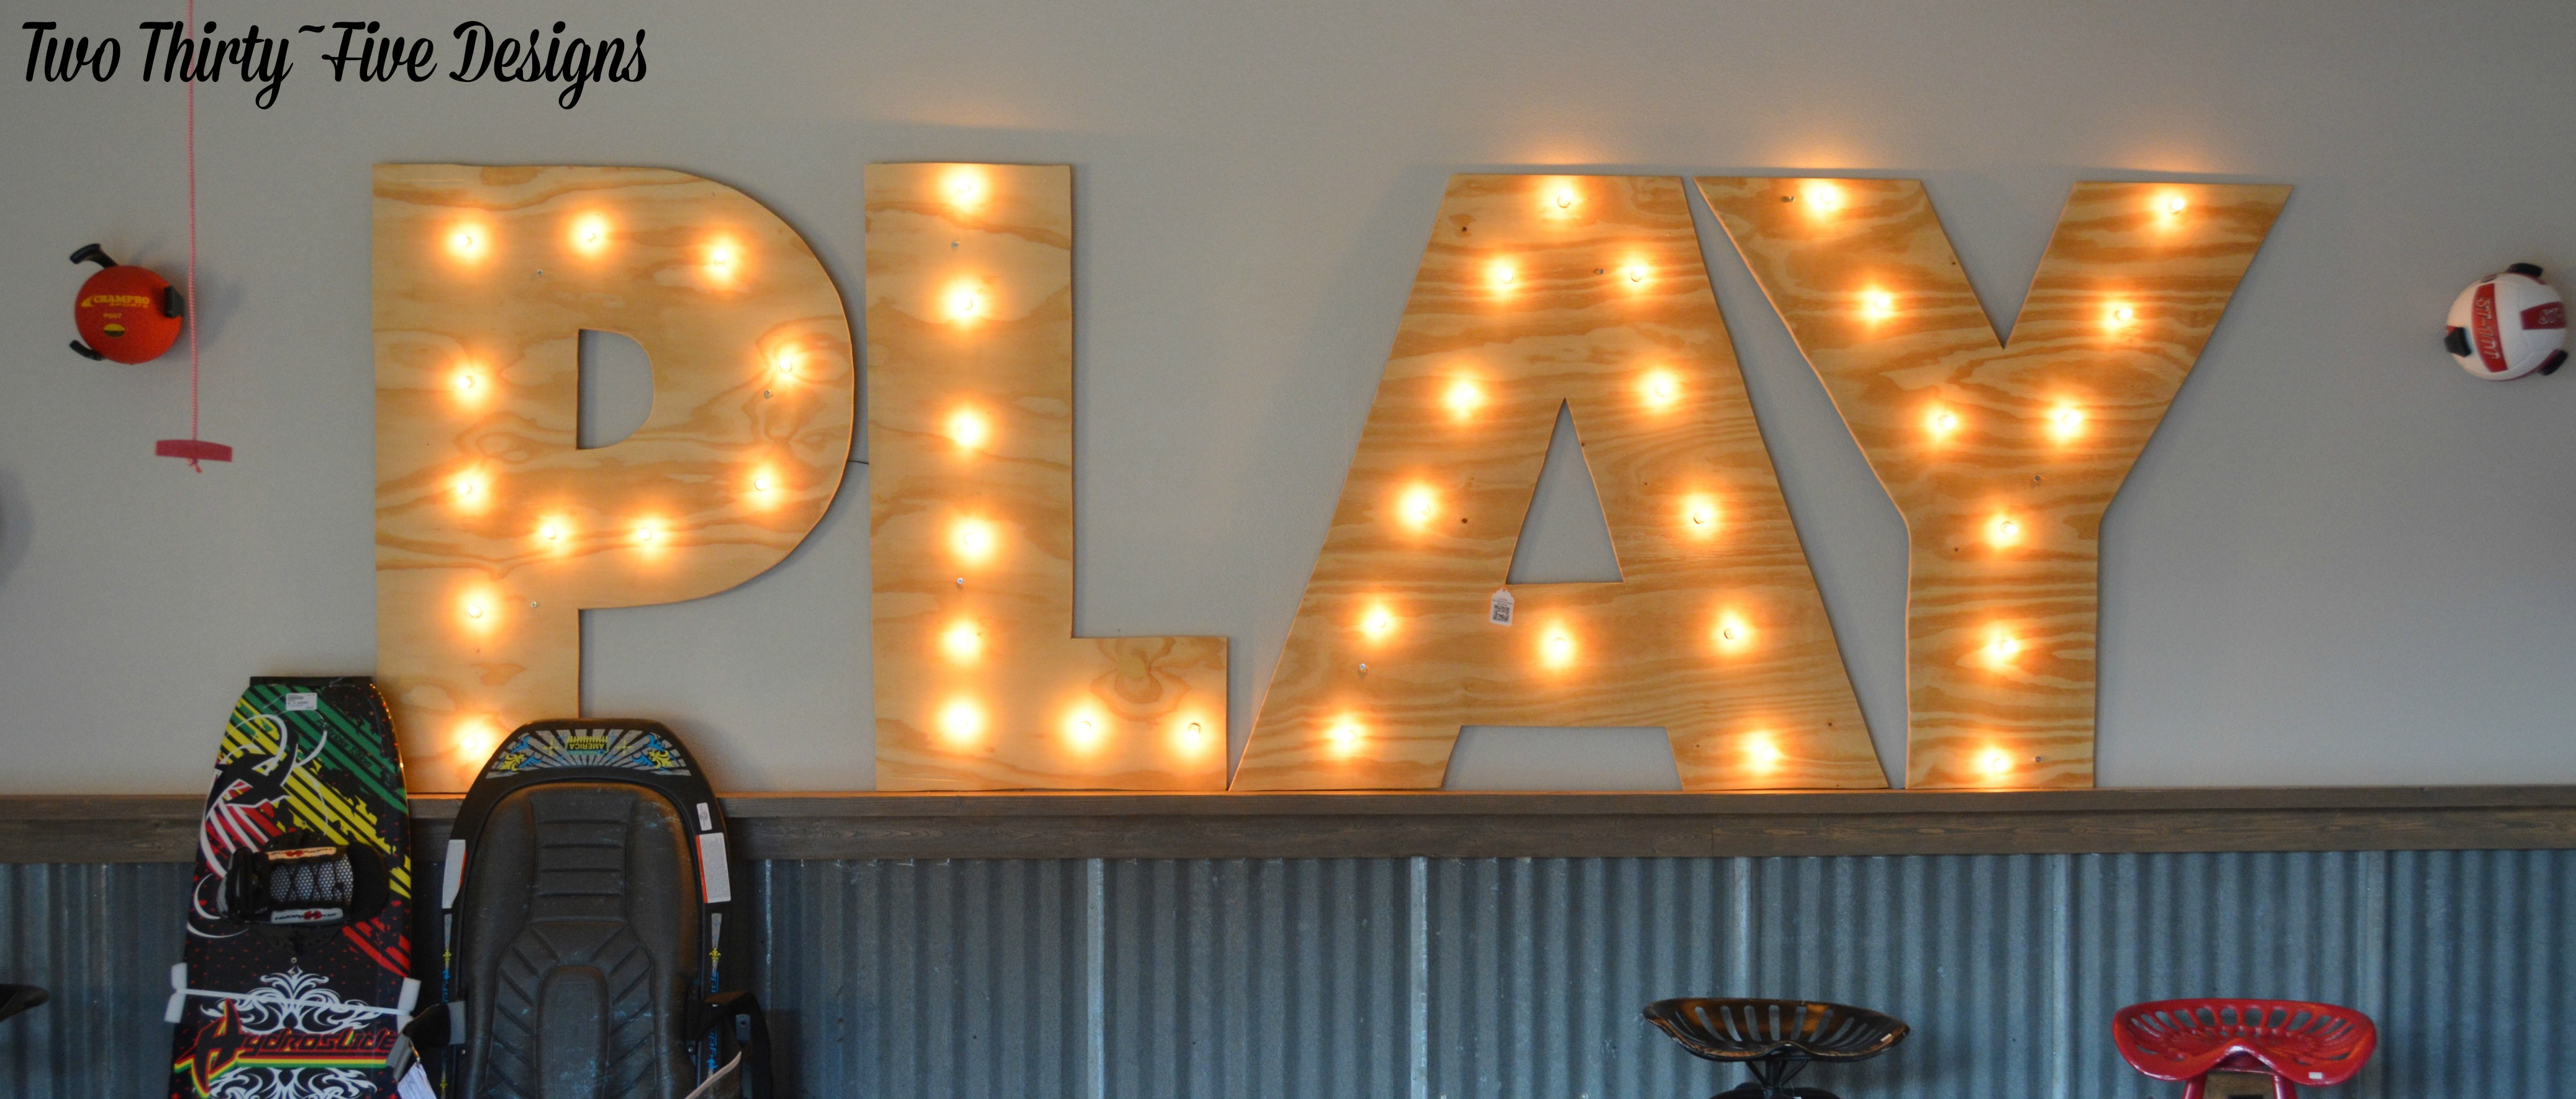 DIY Marquee Letters - Two Thirty-Five Designs